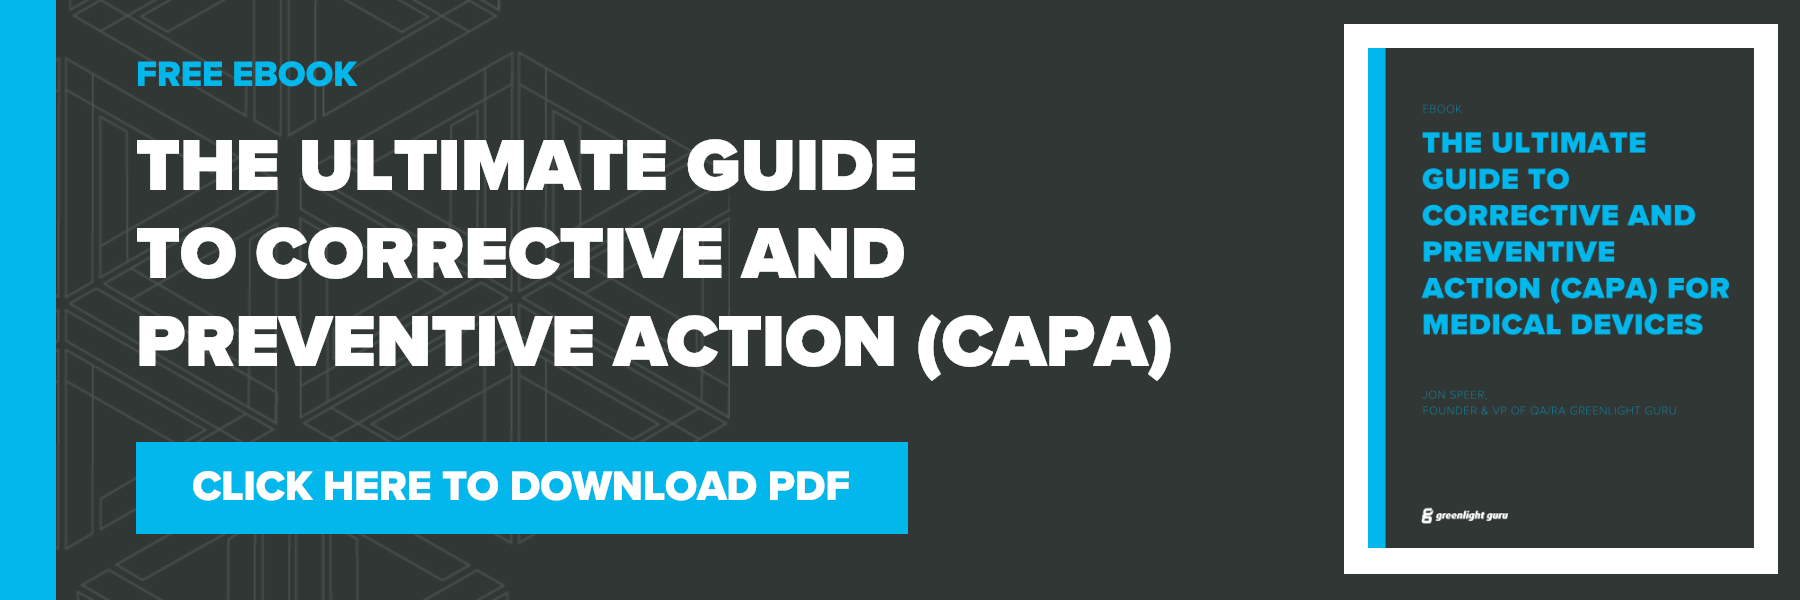 corrective and preventive action CAPA for medical devices PDF download